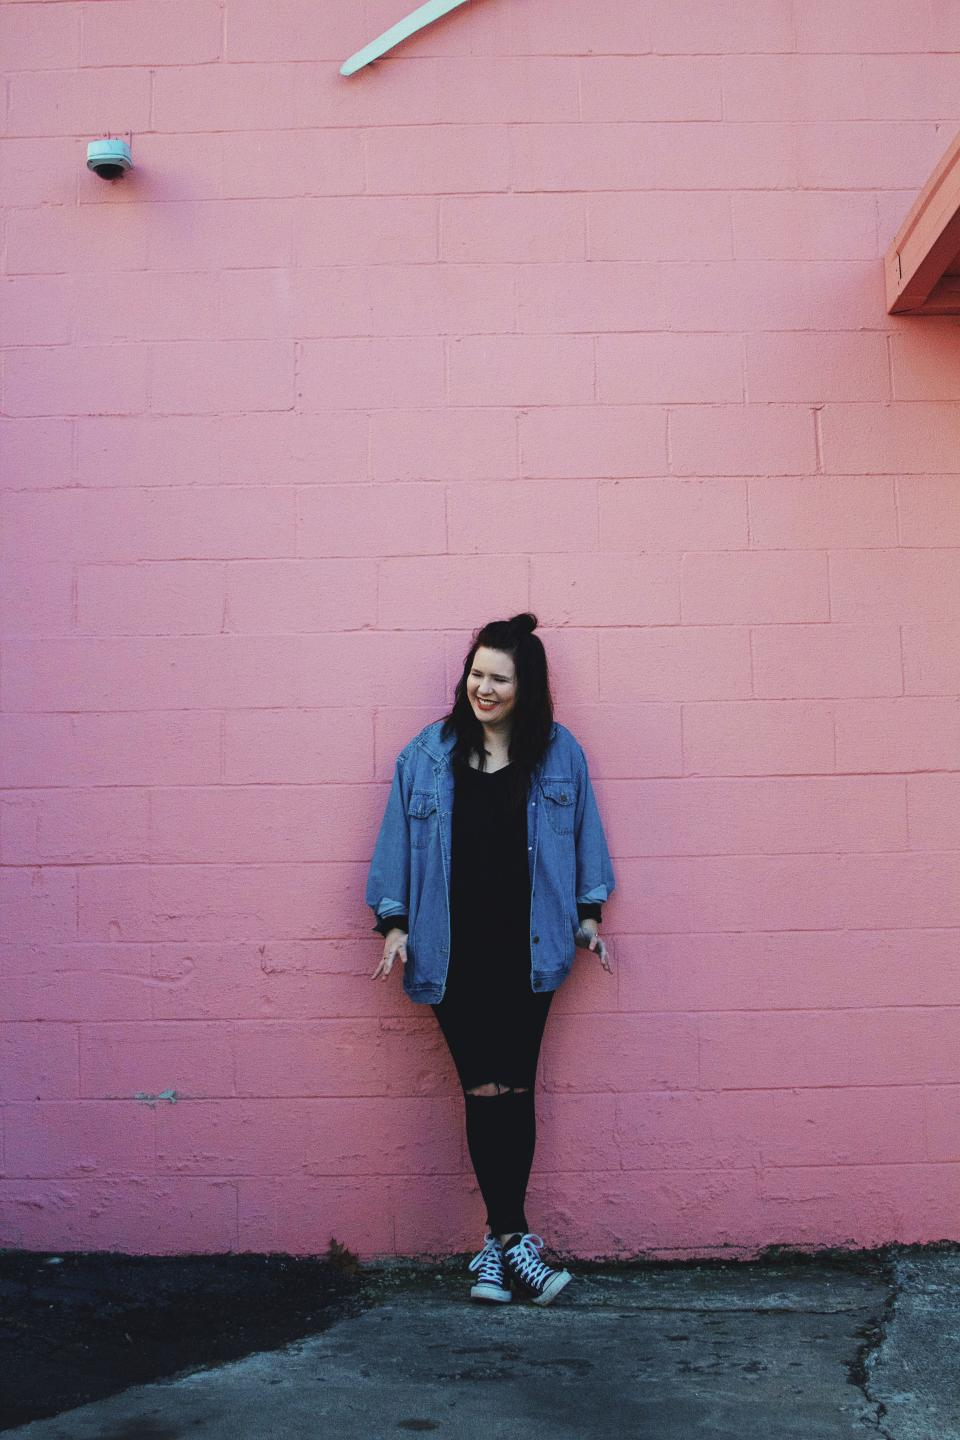 people woman fashion denim pink wall happy smile enjoy